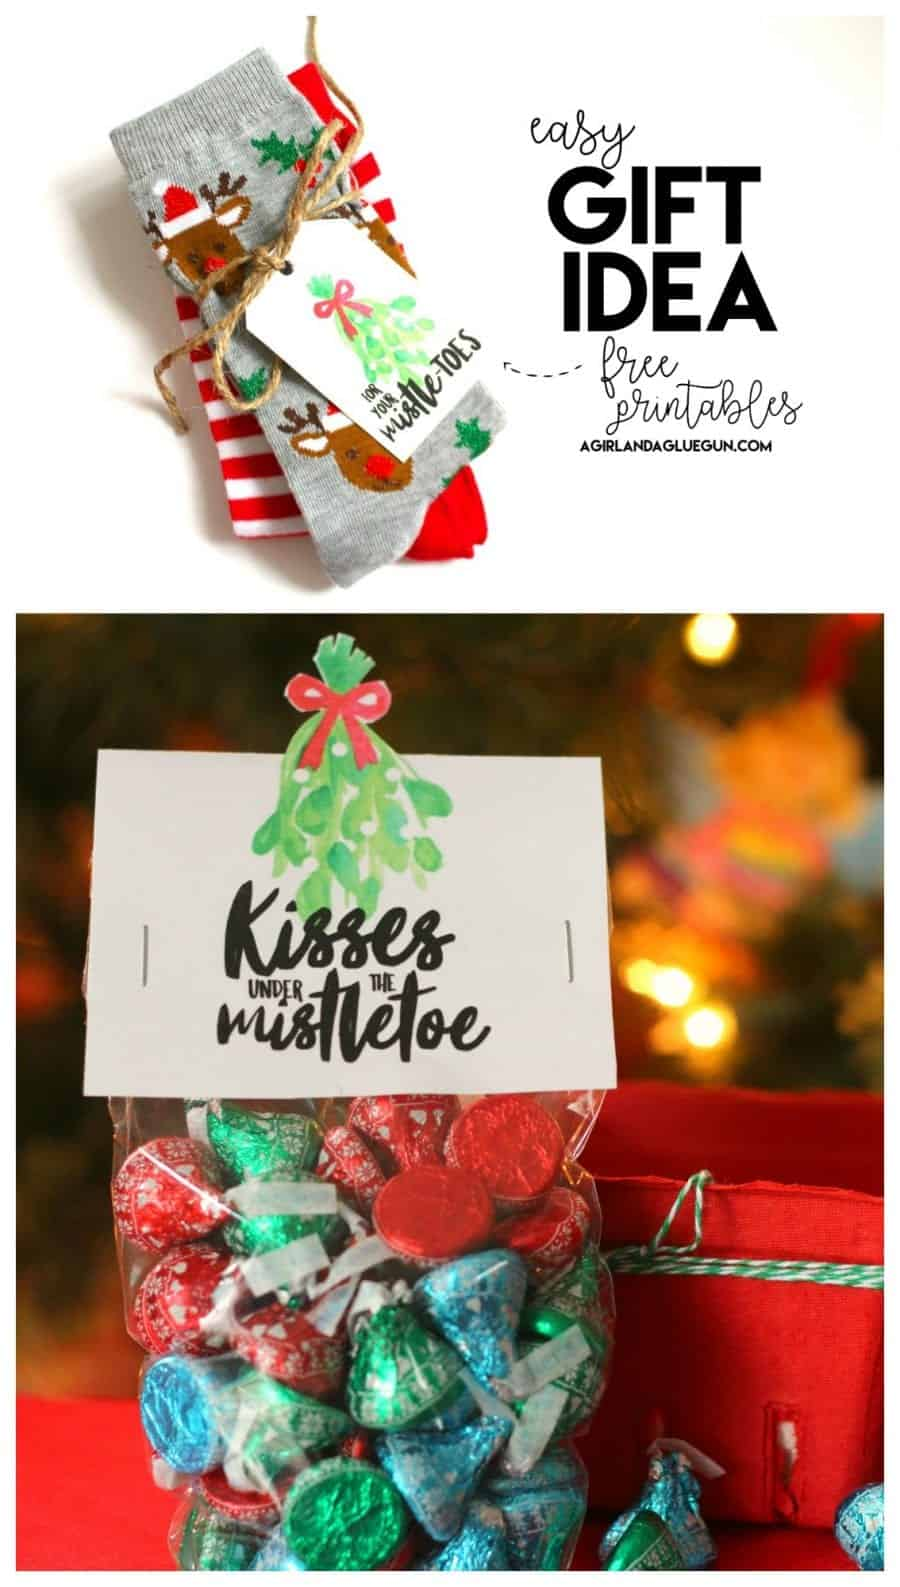 easy-gift-idea-with-free-printables